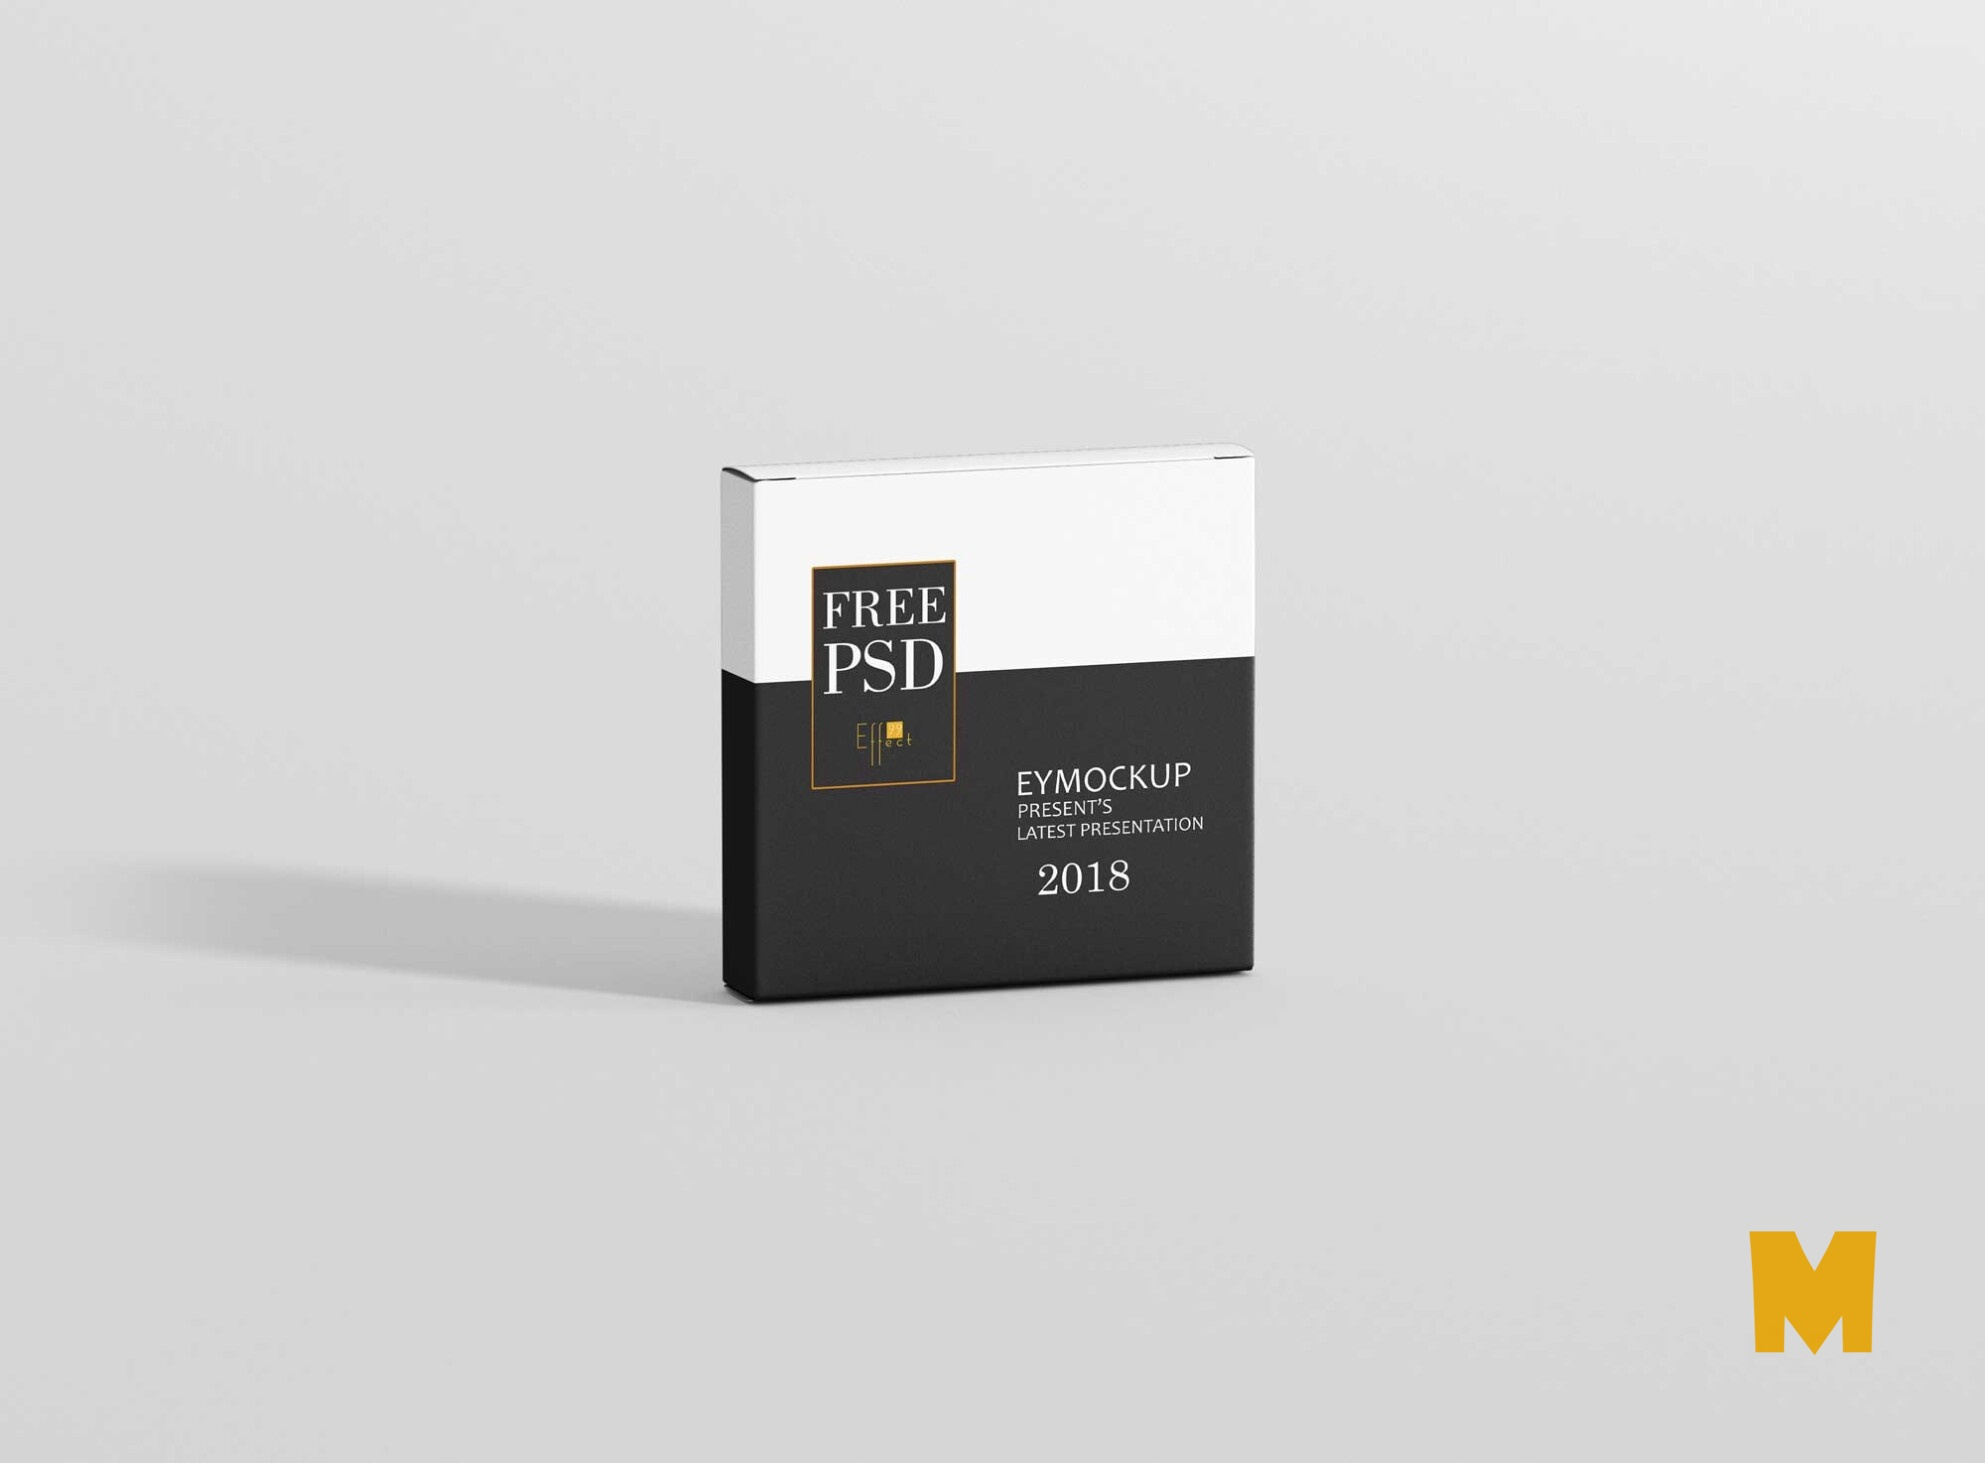 CD Box Packaging Mockup